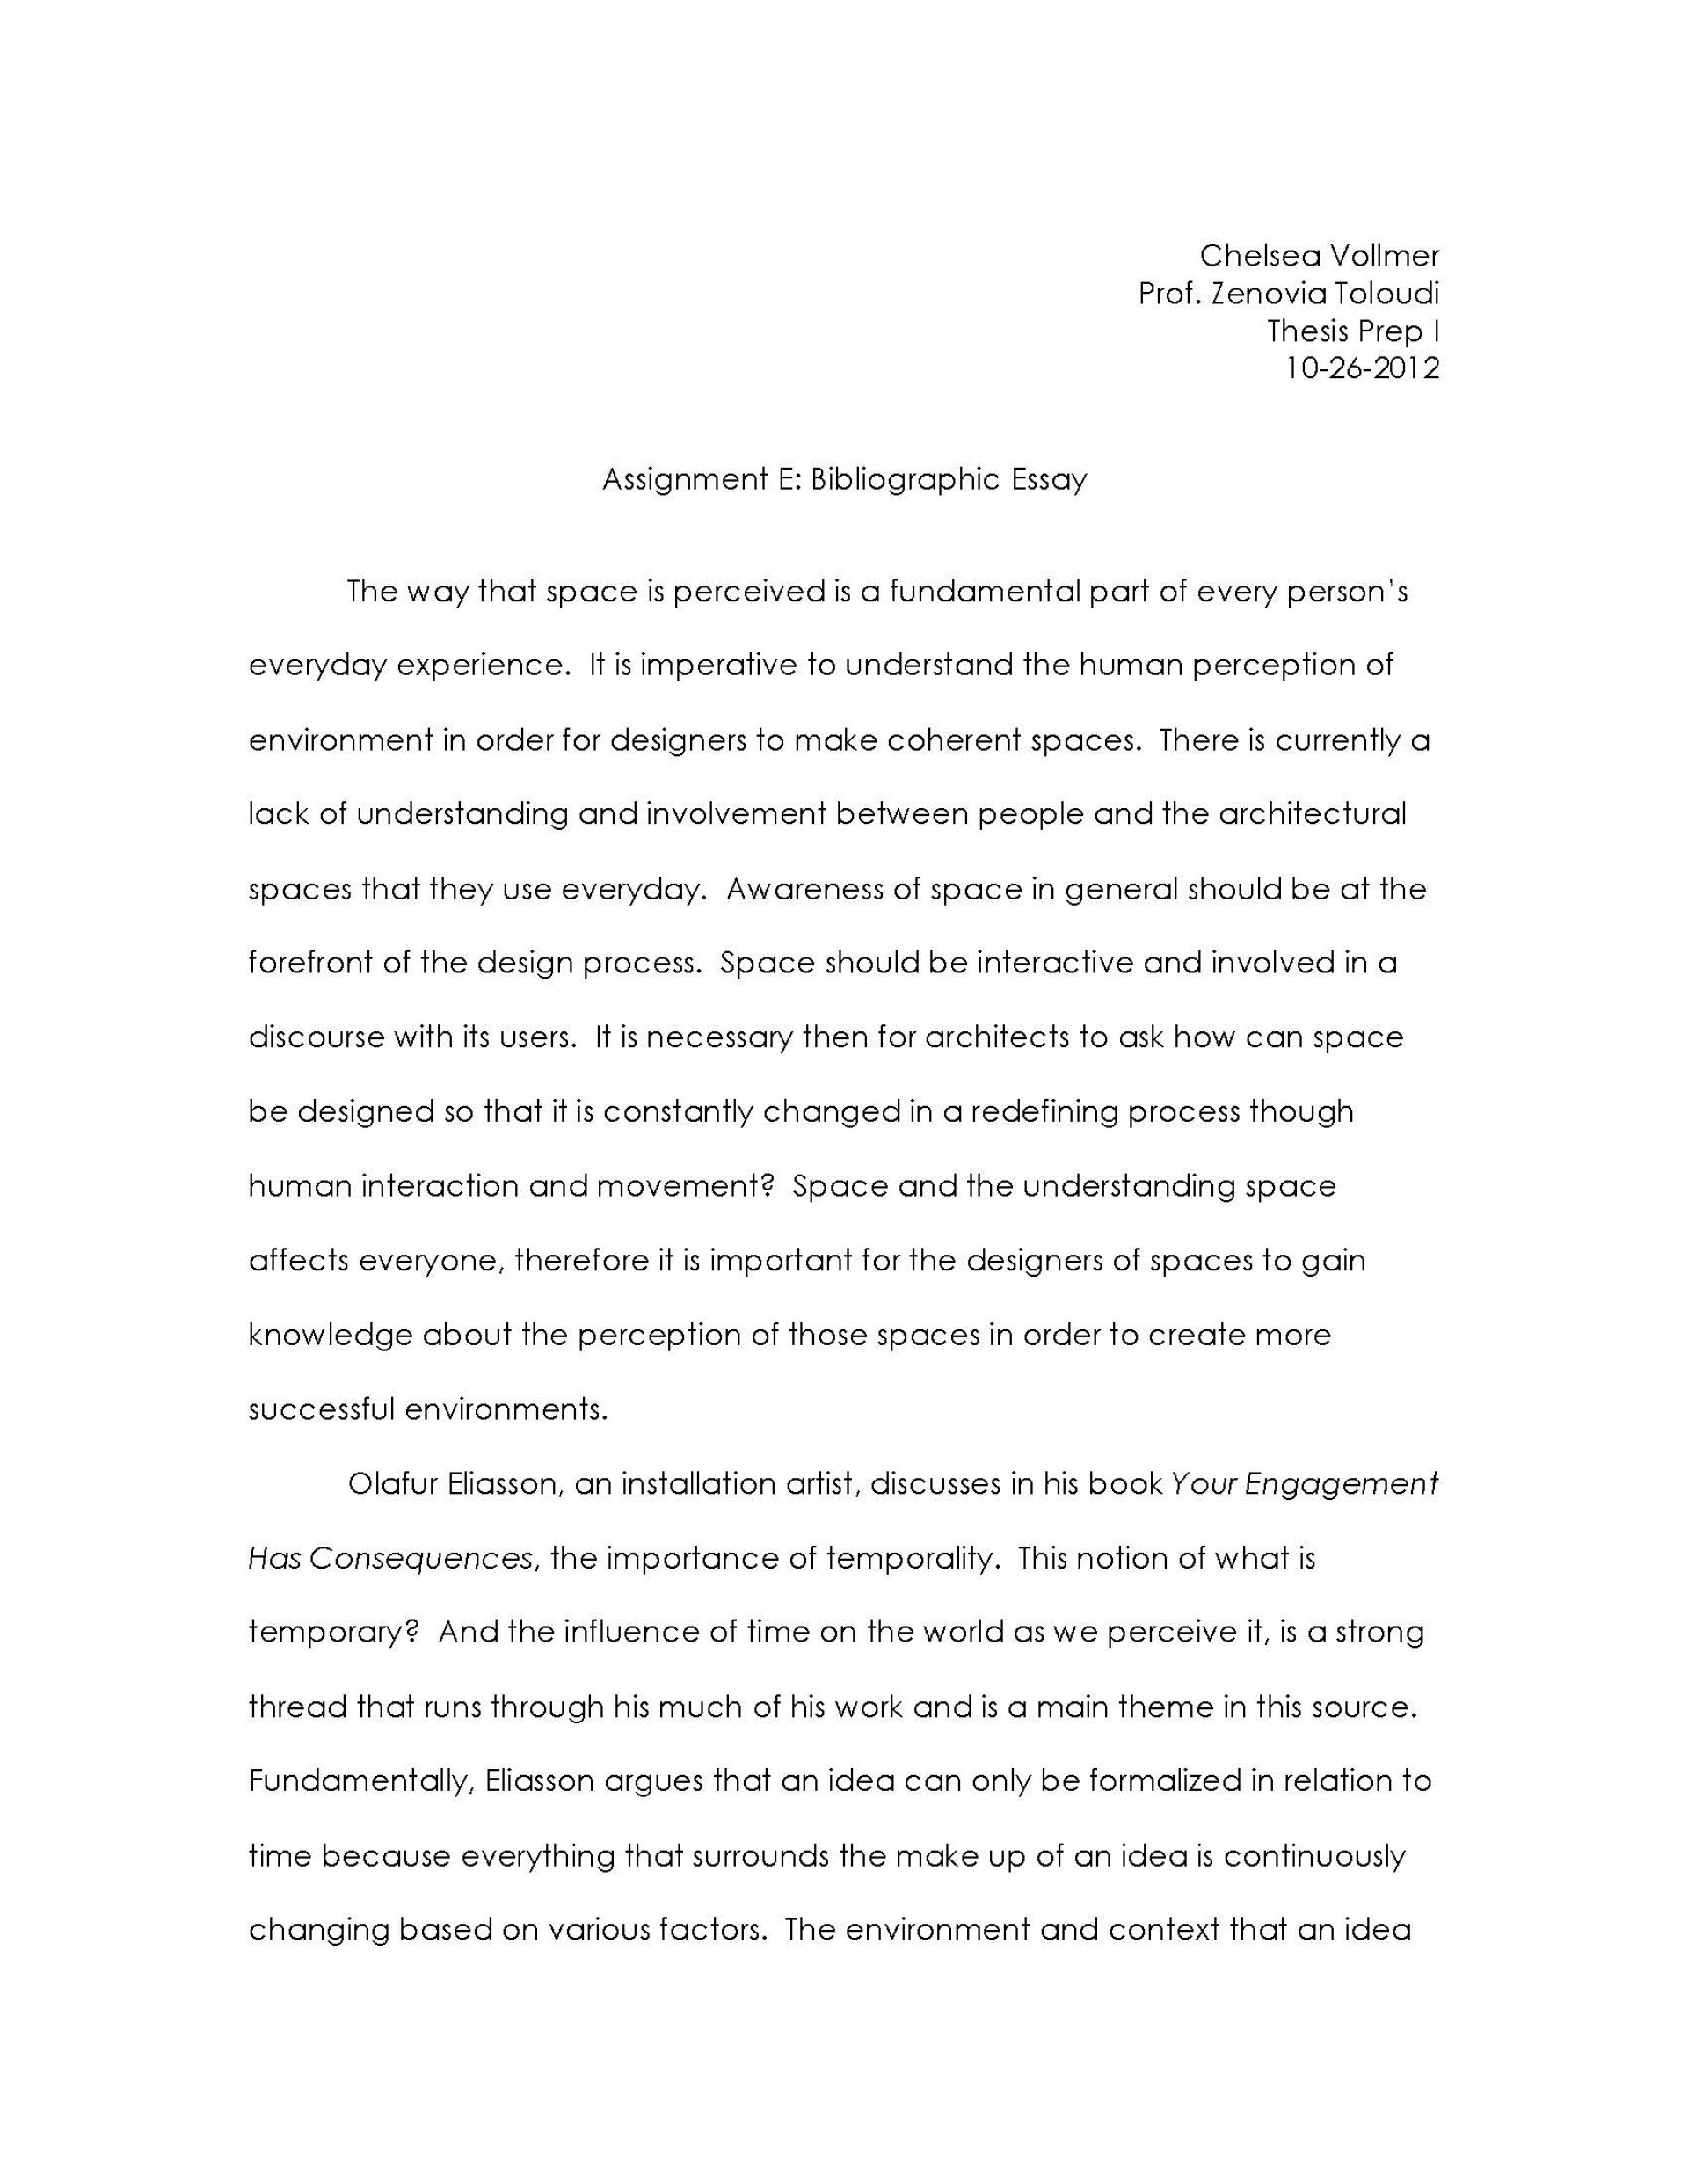 012 Writing Satirical Essay Assignment E Page 12 Top A Examples Of Satire Topics To Write On Sample Essays 1920